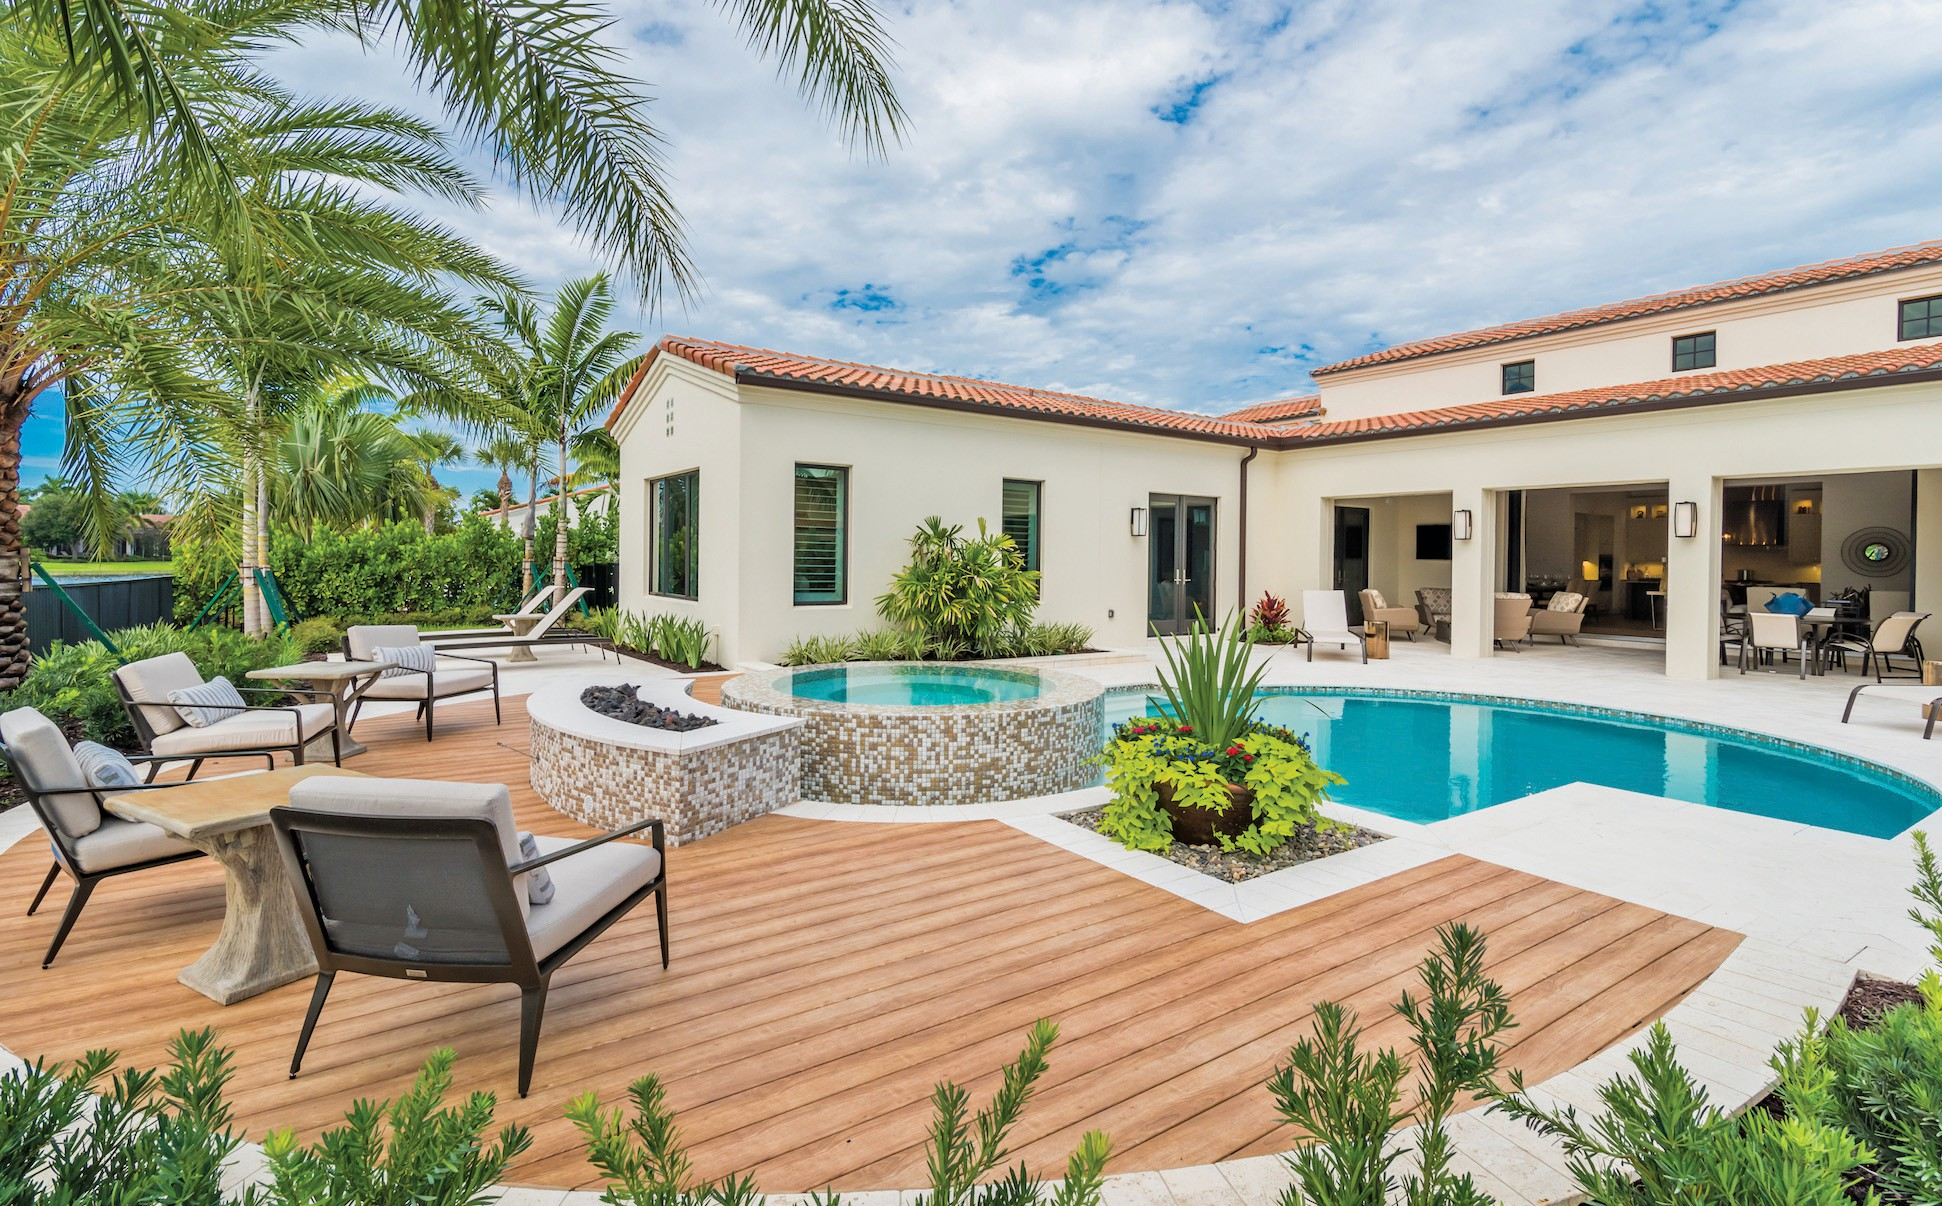 Don't miss London Bay Homes' winter 2019 Model Home Showcase ... on john r wood naples, bay of naples, pitchers of naples, the turtle club naples, bay of capri, aria naples, m waterfront grille naples,